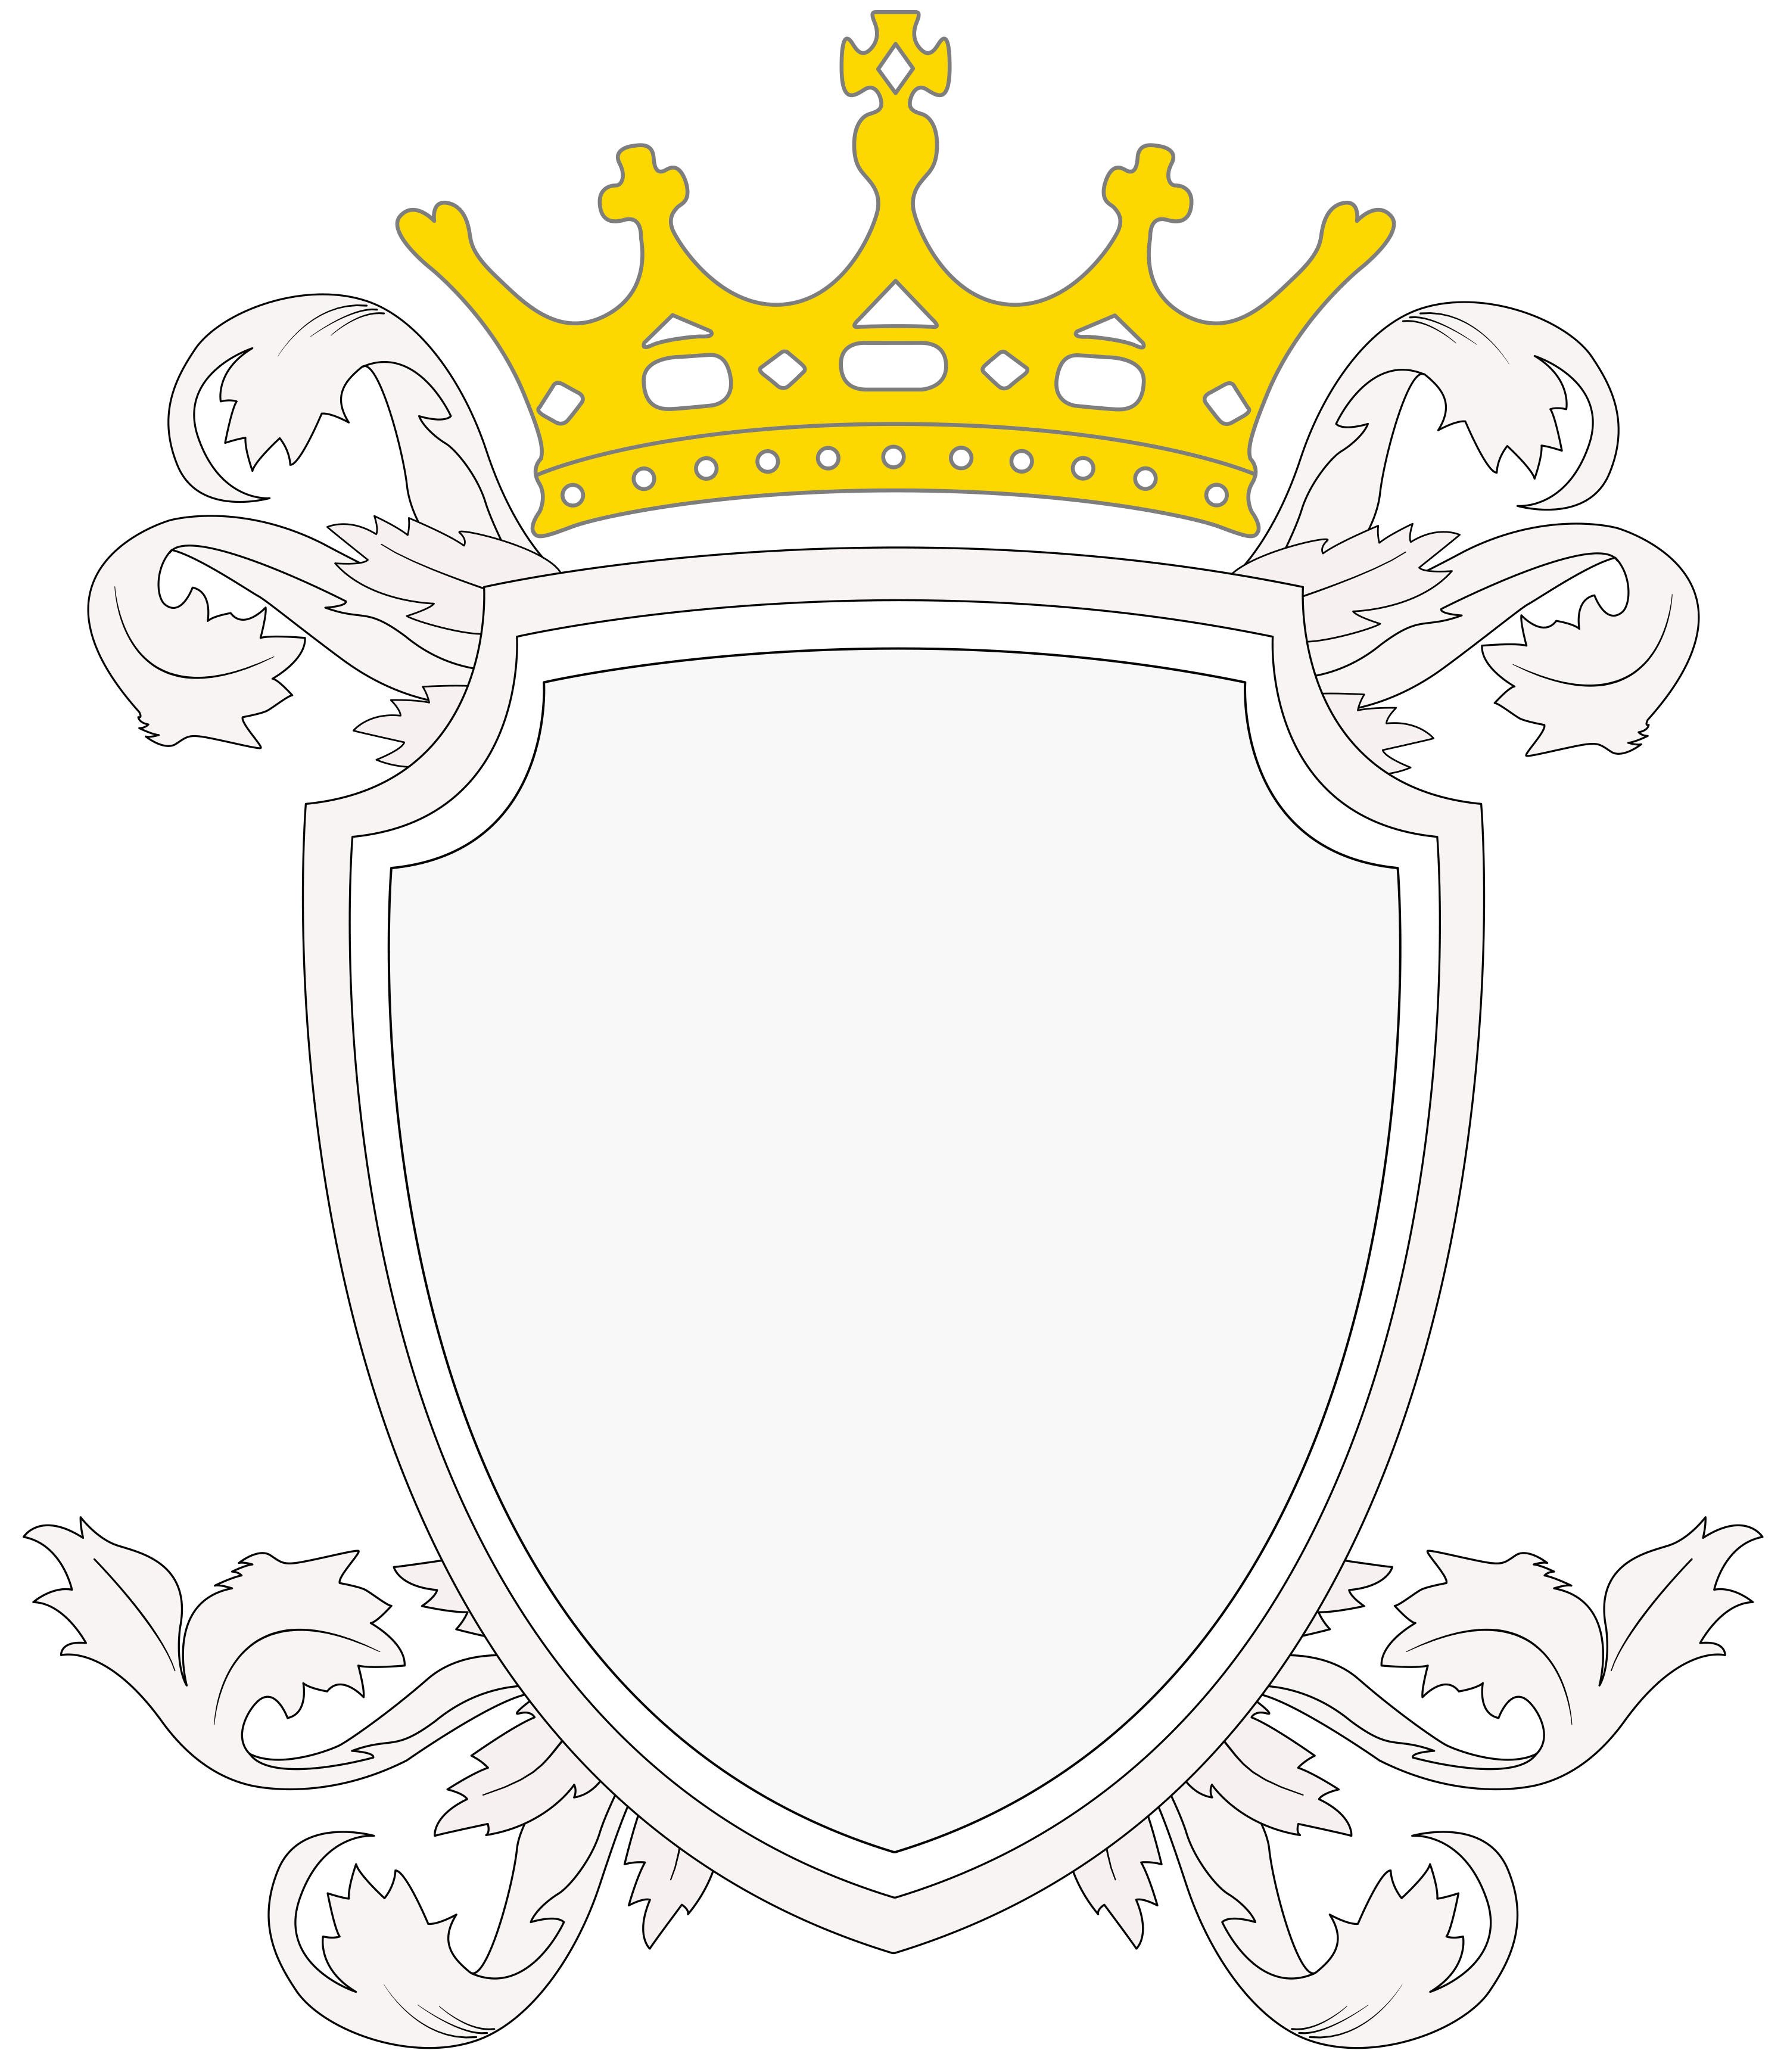 The mercurian empire view. Blank crest png picture black and white stock